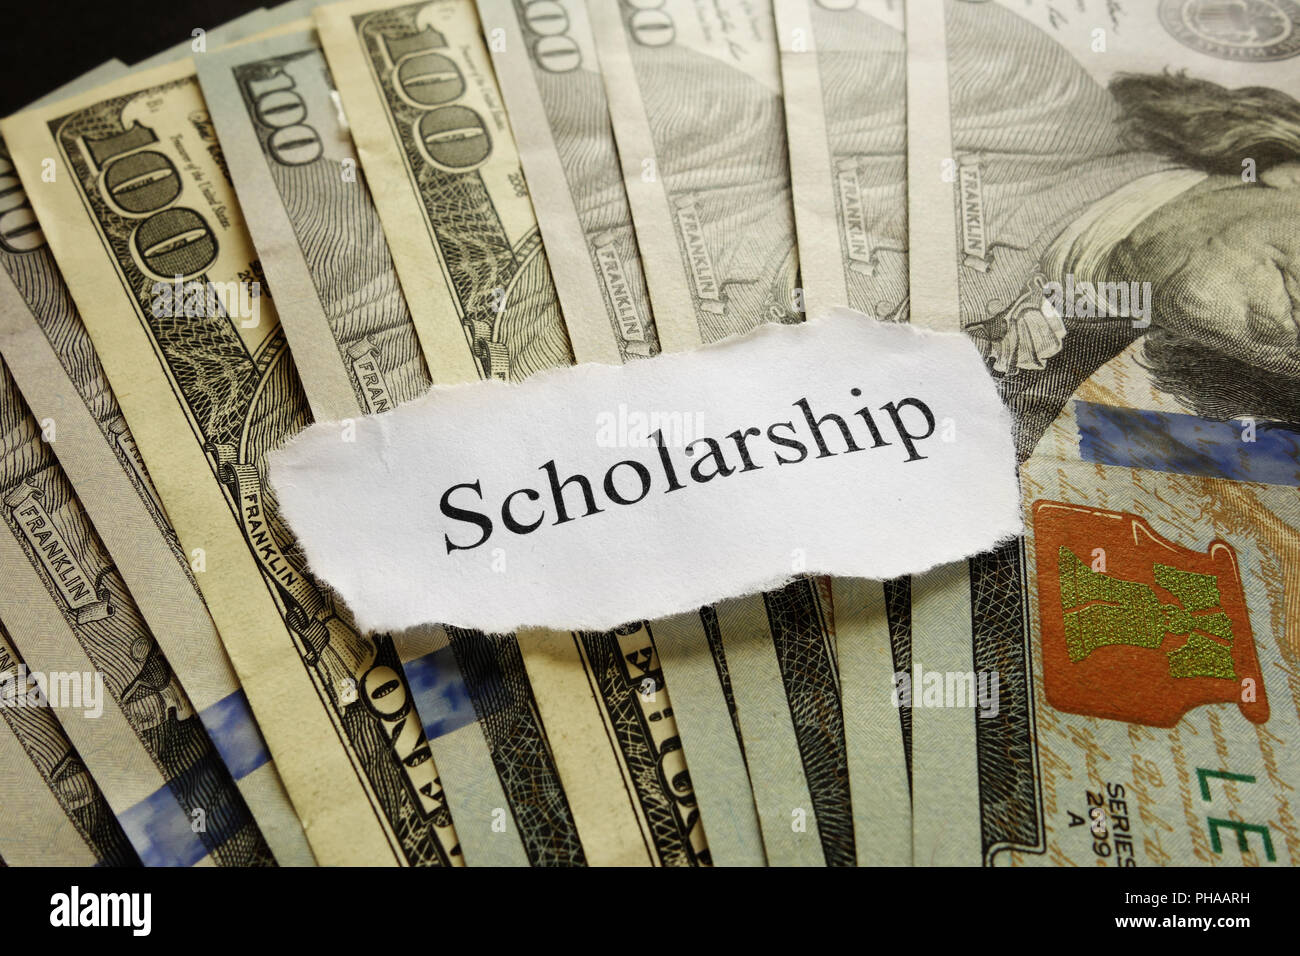 Scholarship paper note - Stock Image